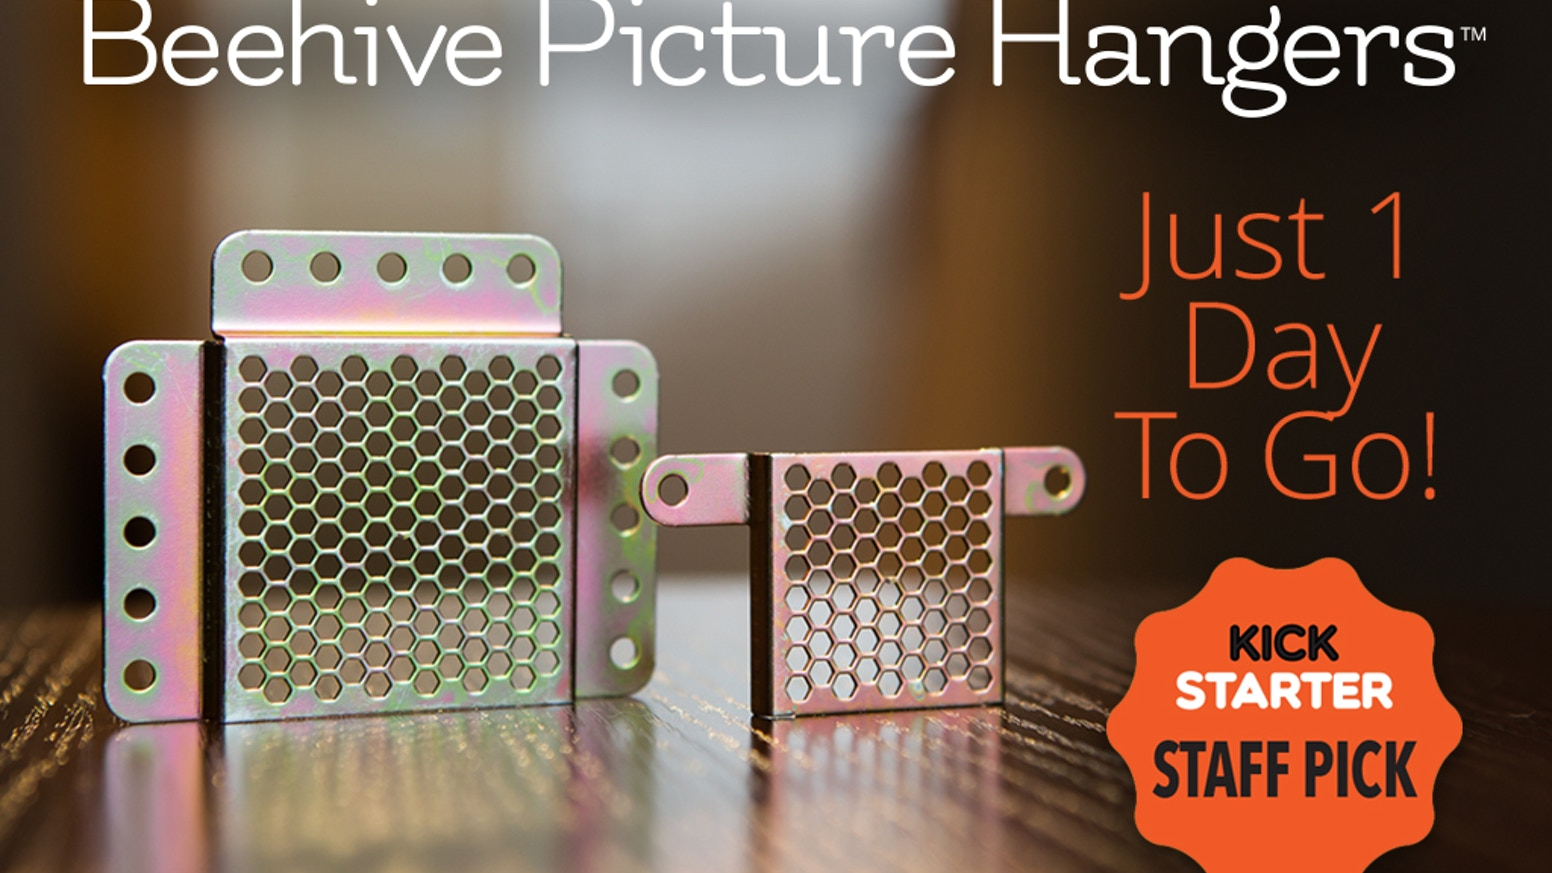 The world's first adjustable picture hangers! Hang picture frames WITHOUT TAKING A SINGLE MEASUREMENT, in less than 5 minutes! beehivepicturehangers.com